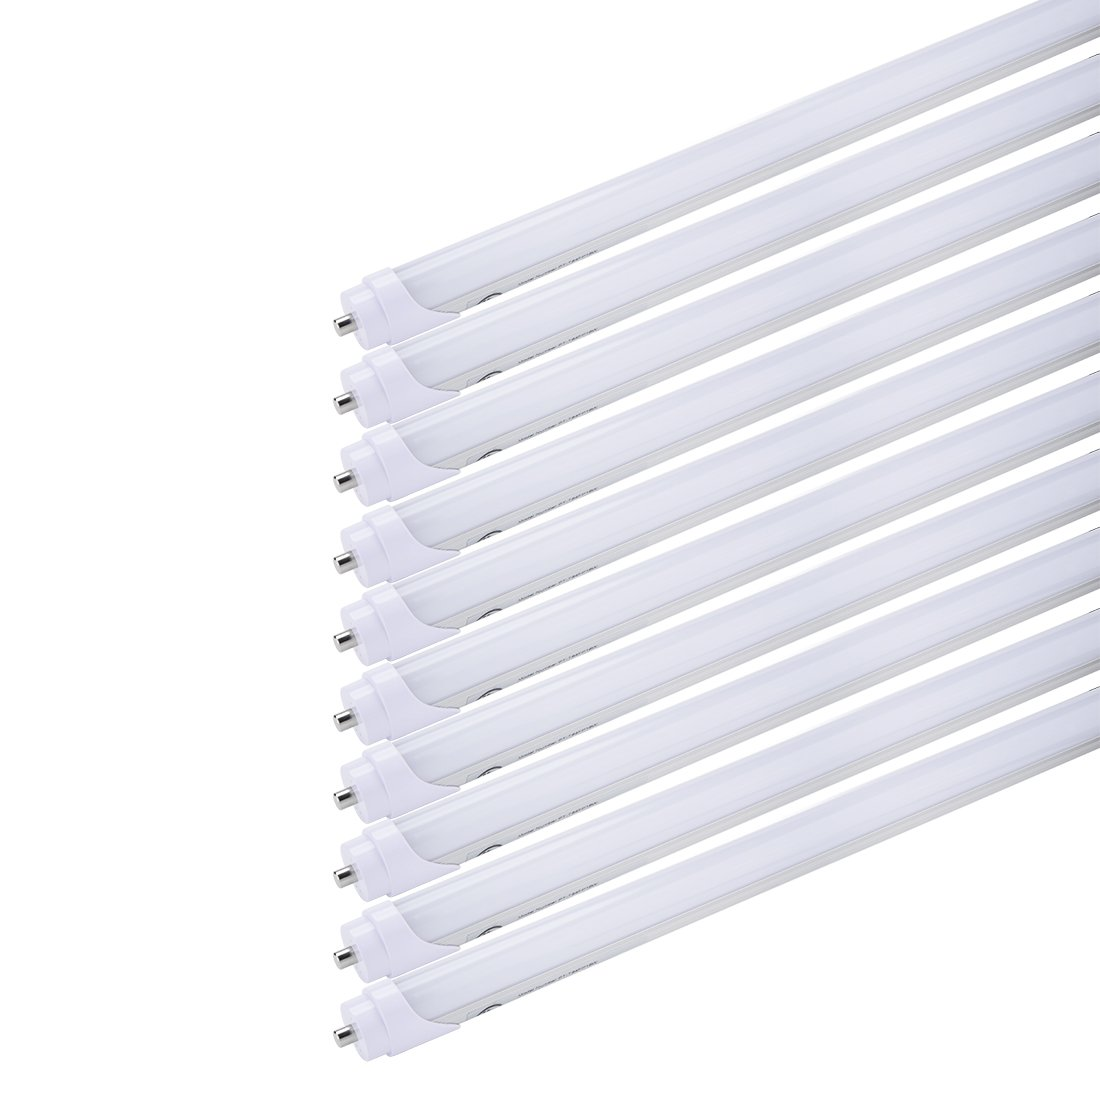 uxcell 10Pcs T8 4Ft LED Light Tube FA8 18W 4000K Neutral White, Dual-End Powered, Frosted Cover, T8 T10 T12 Fluorescent Light Replacement, LED Shop Light, UL-Listed and DLC-Qualified